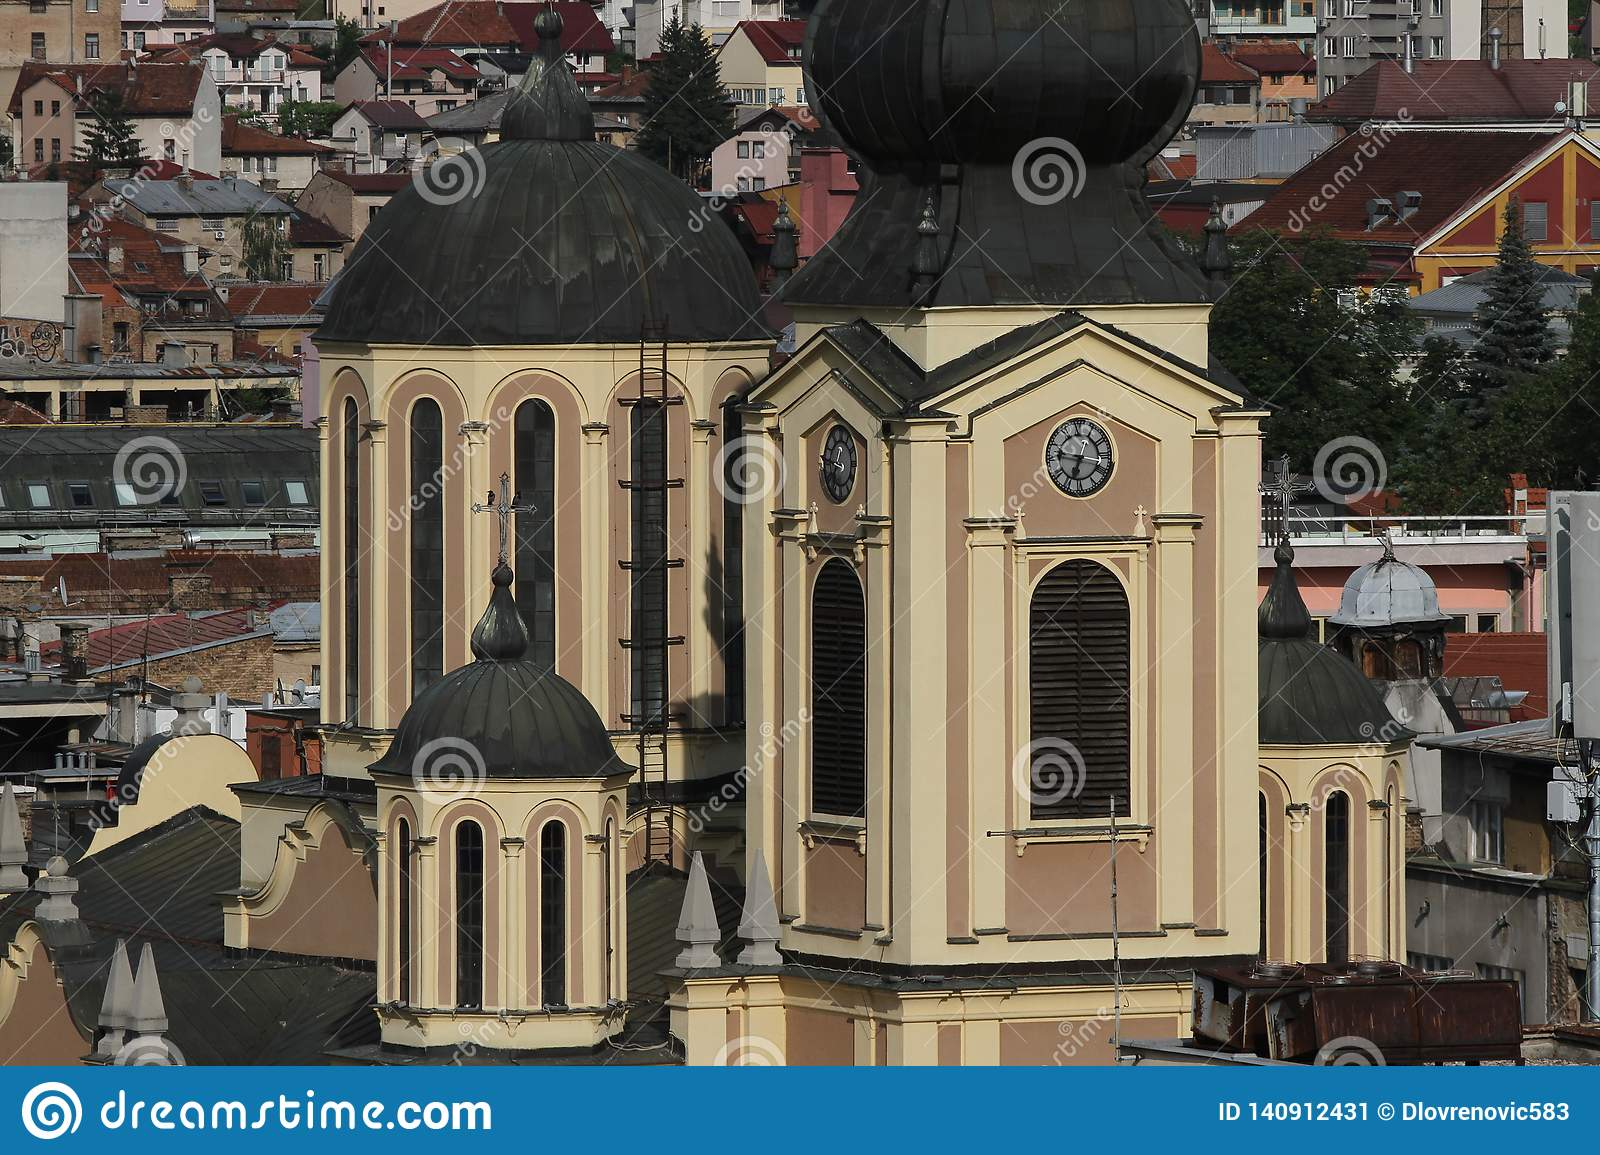 Sarajevo town of east and west cultures